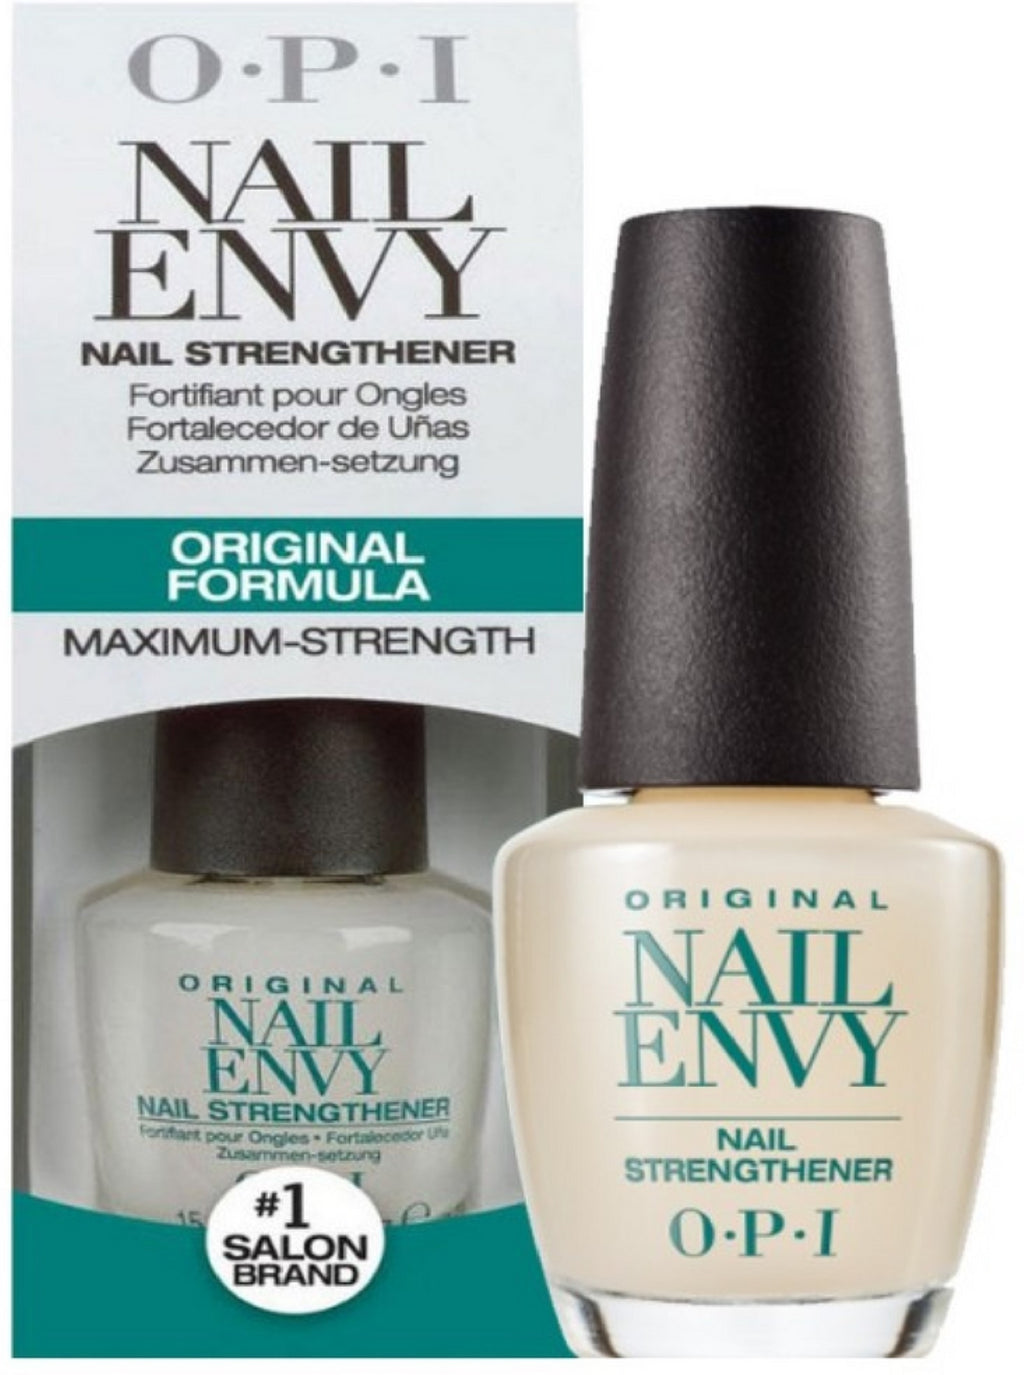 Nail Envy Nail Strengthener